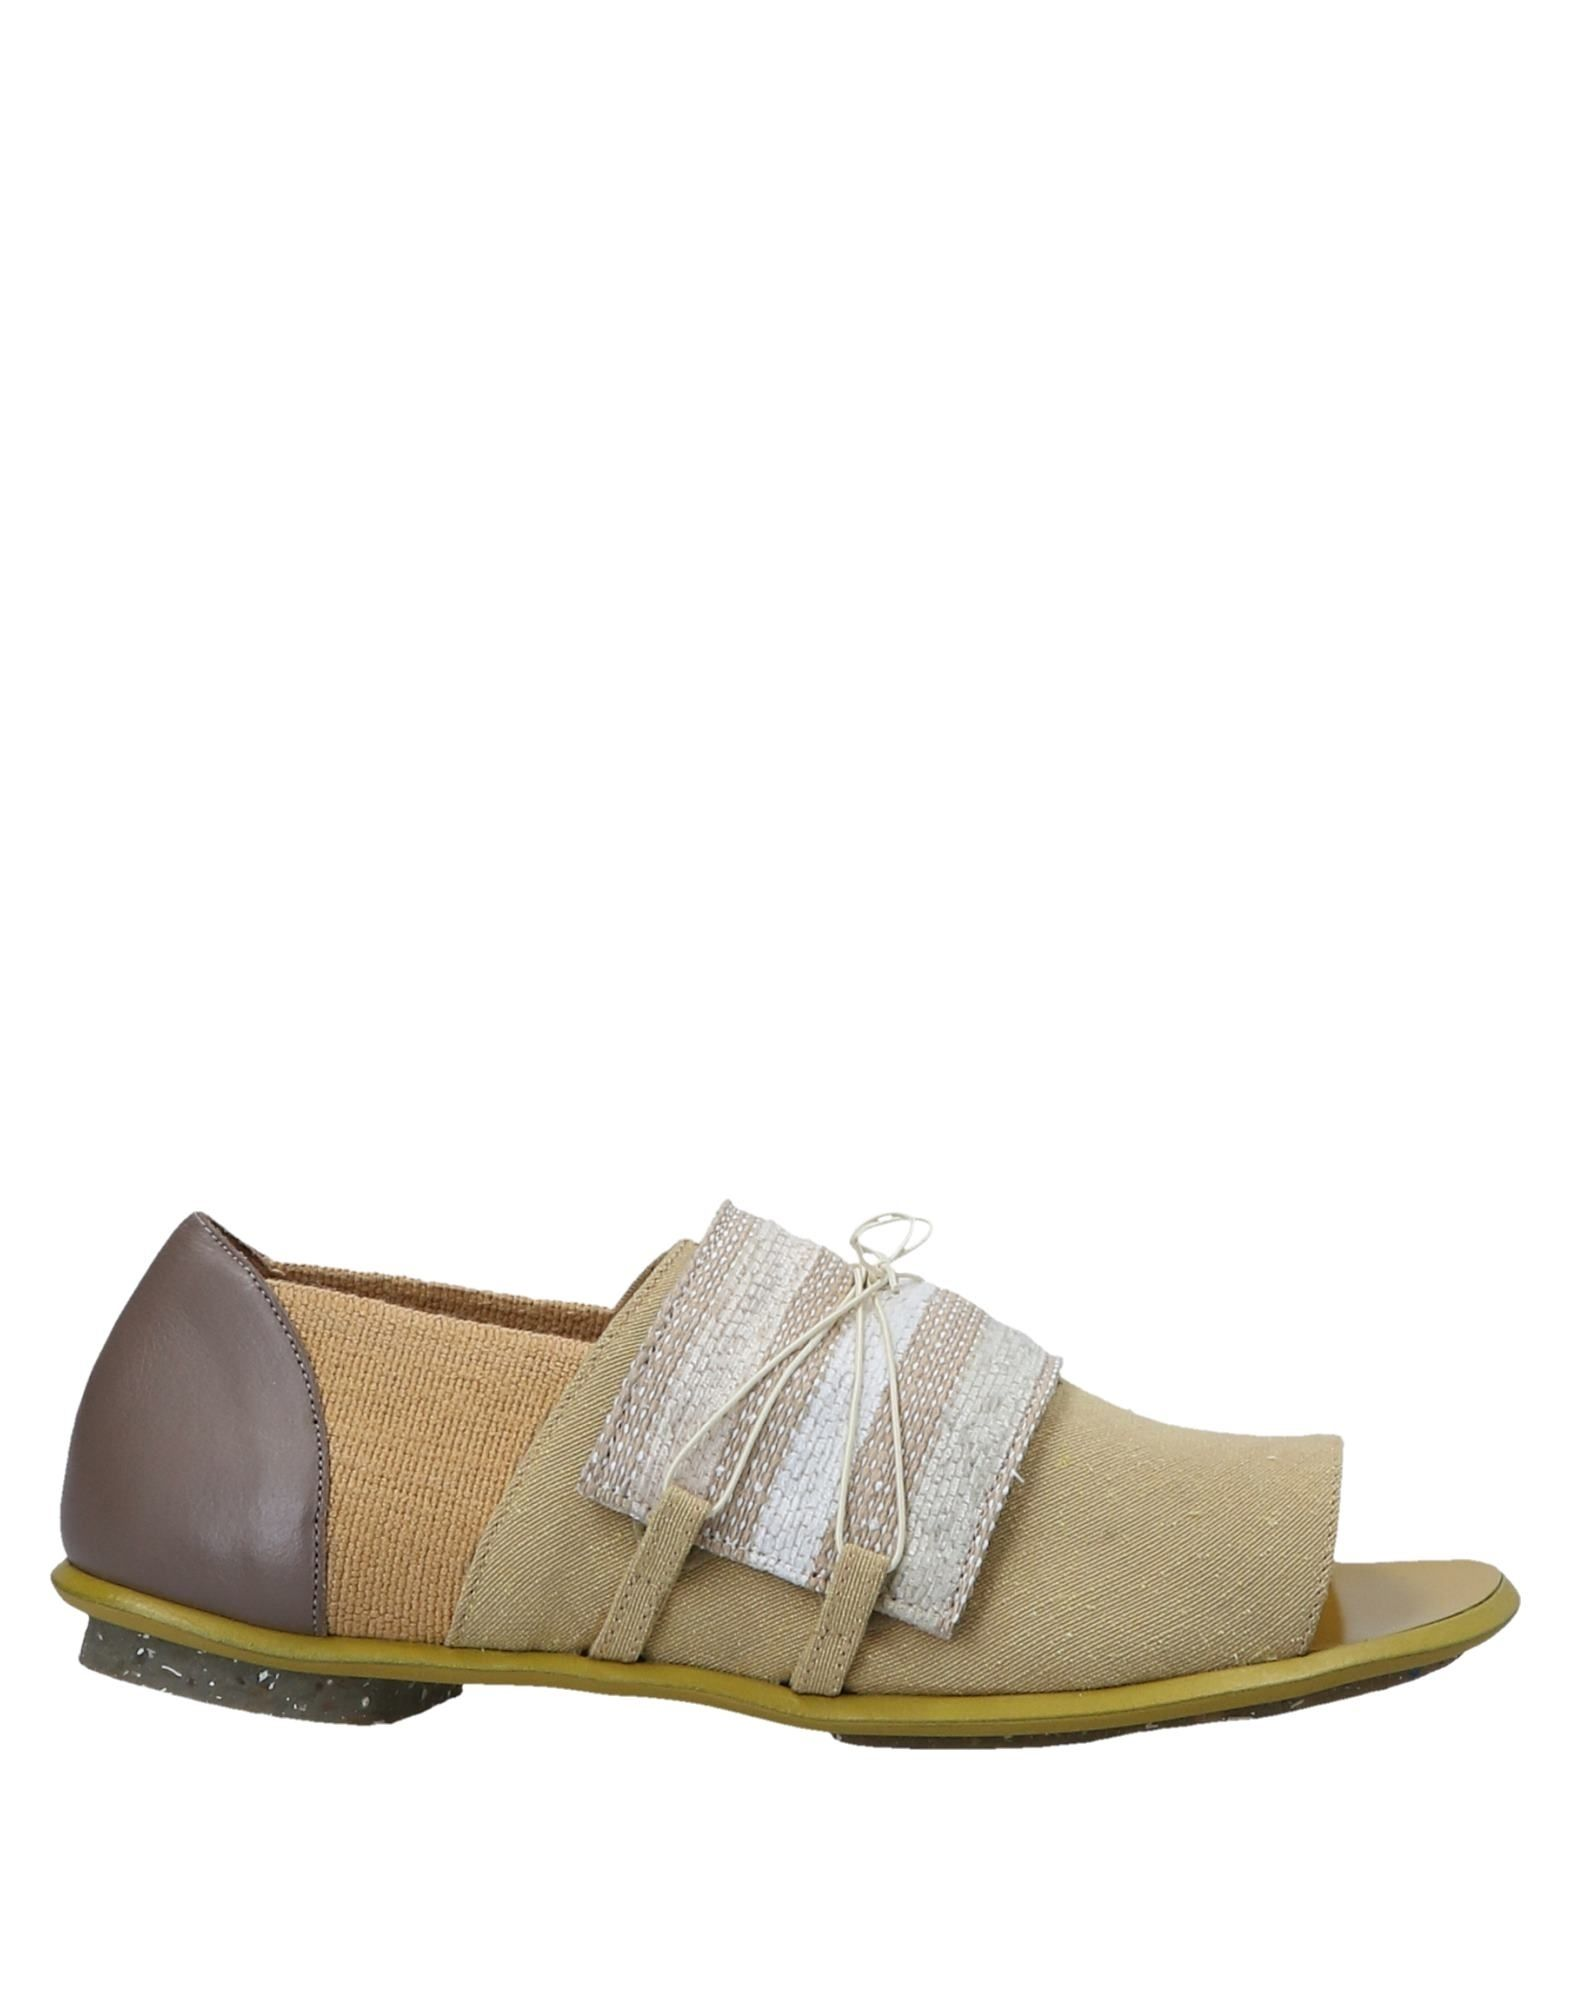 Ciao Mao Loafers - Women Ciao Mao Loafers online 11555999AP on  Australia - 11555999AP online 864aee